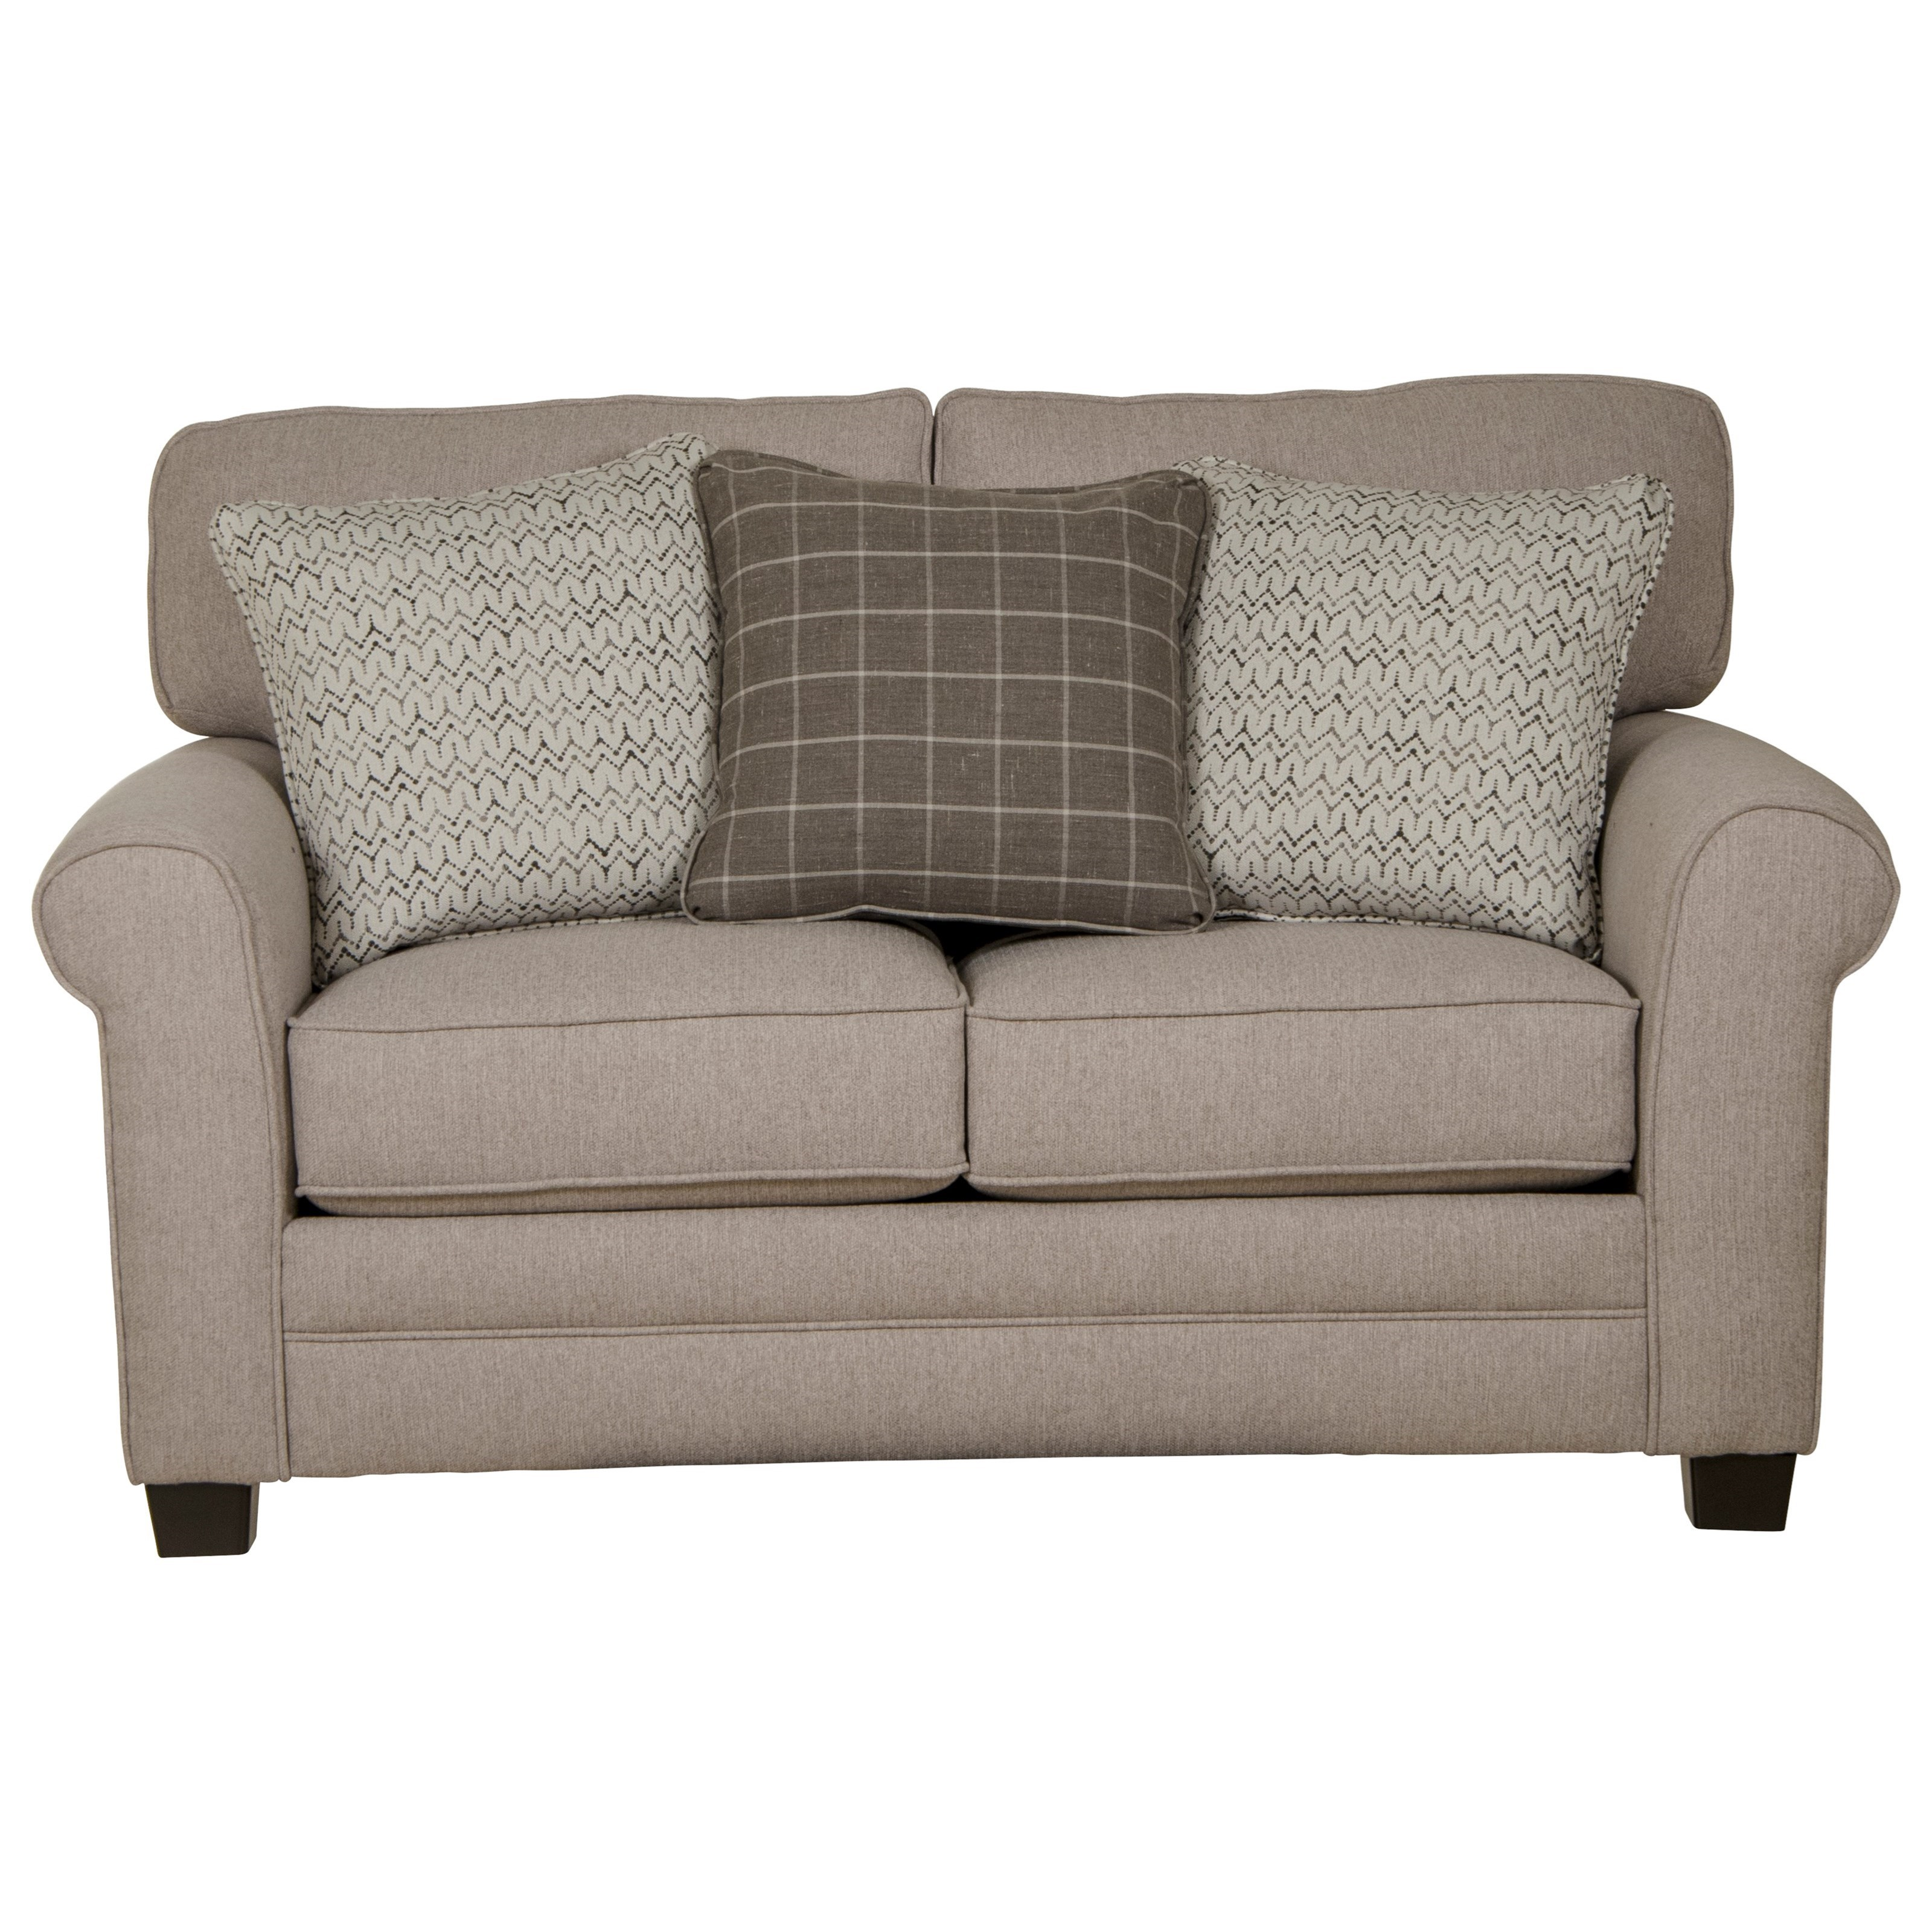 Lewiston Loveseat by Jackson Furniture at Northeast Factory Direct